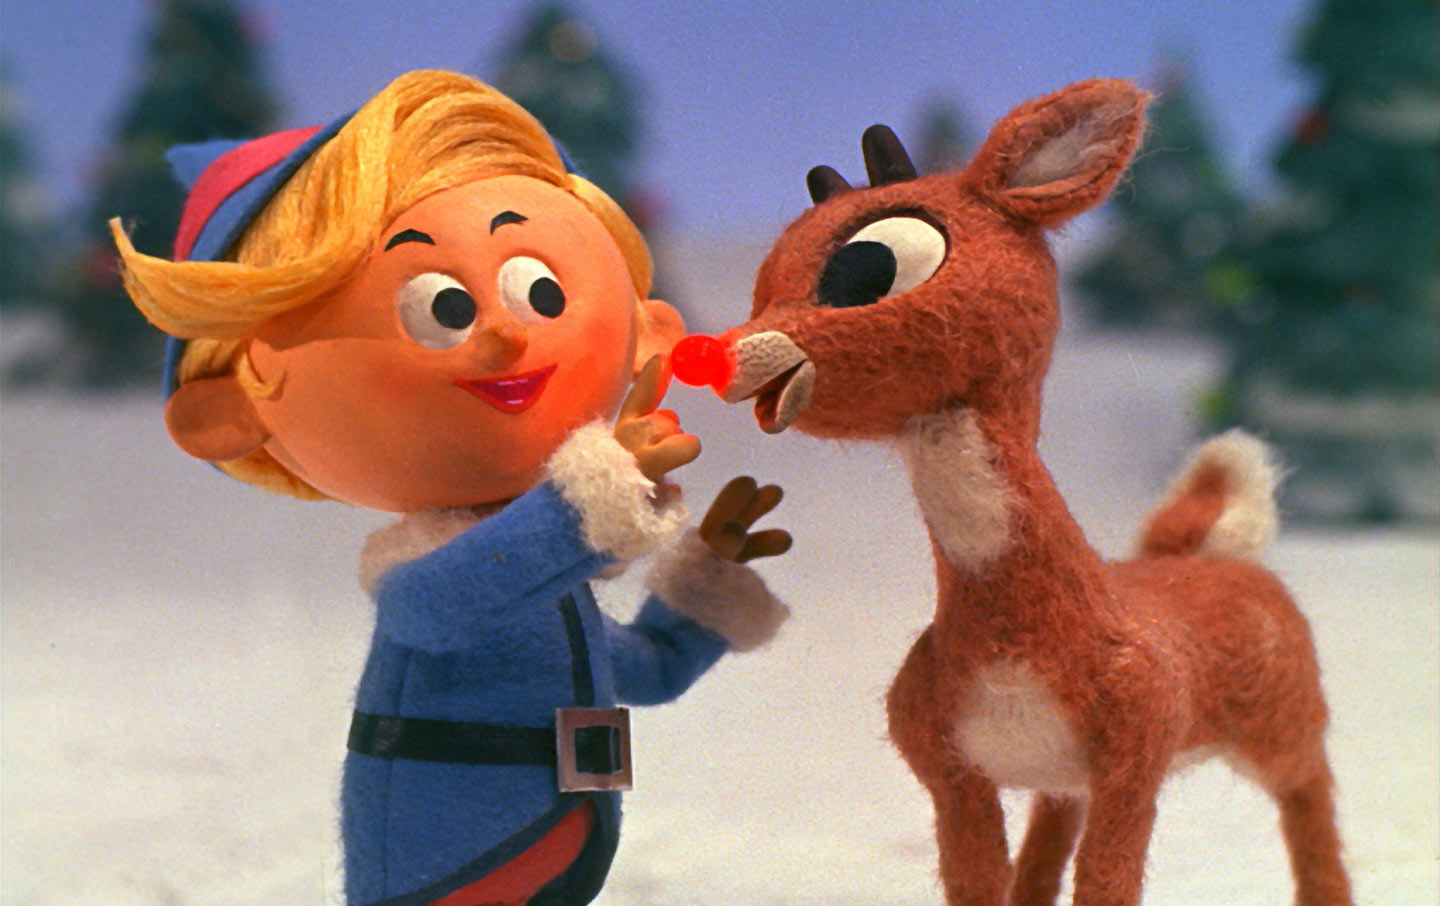 Don't Cancel Rudolph the Red-Nosed Reindeer!